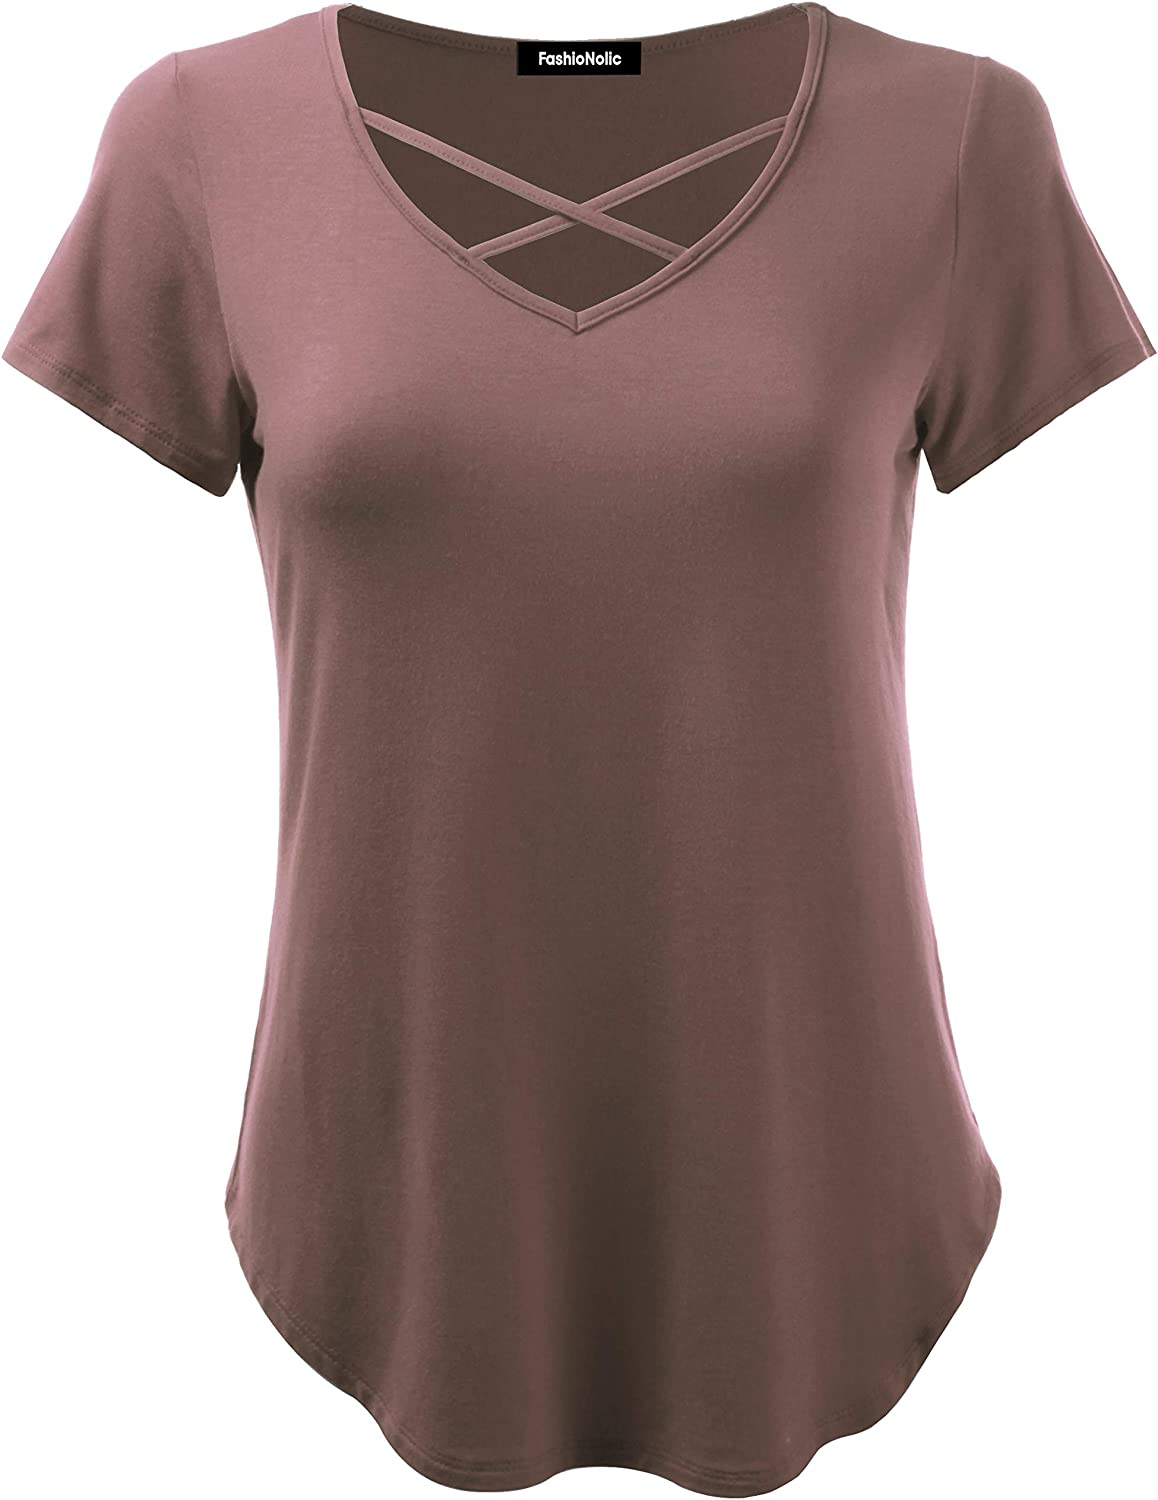 FASHIONOLIC Womens Casual V Neck Short Sleeve Criss Cross/Lace Trim V Neck T-Shirt Blouse Tank Tops S-3X (Made in USA)